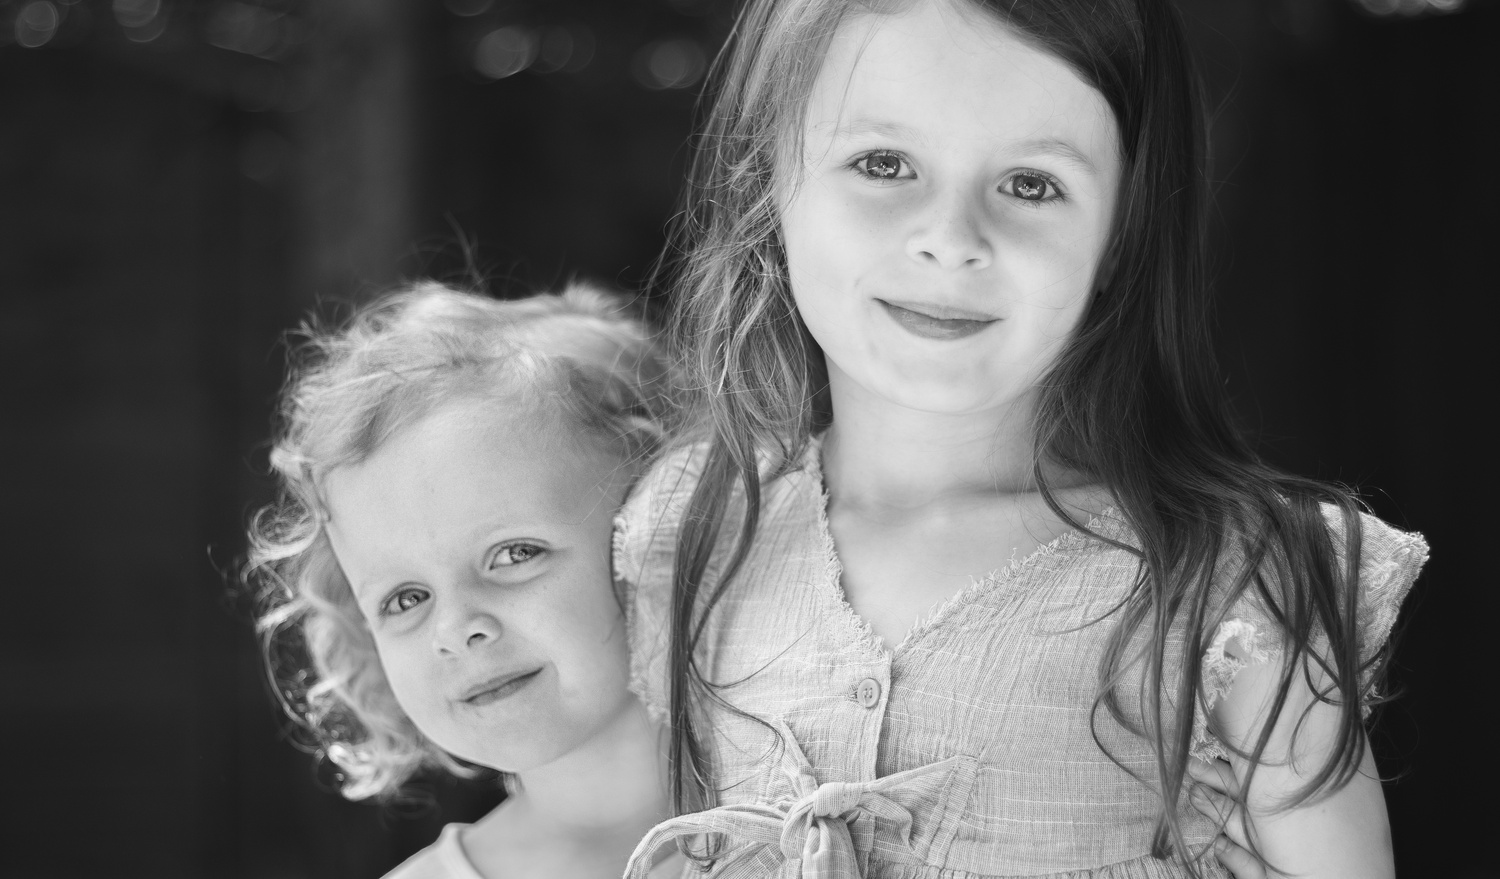 Sisters by Dominic Garforth